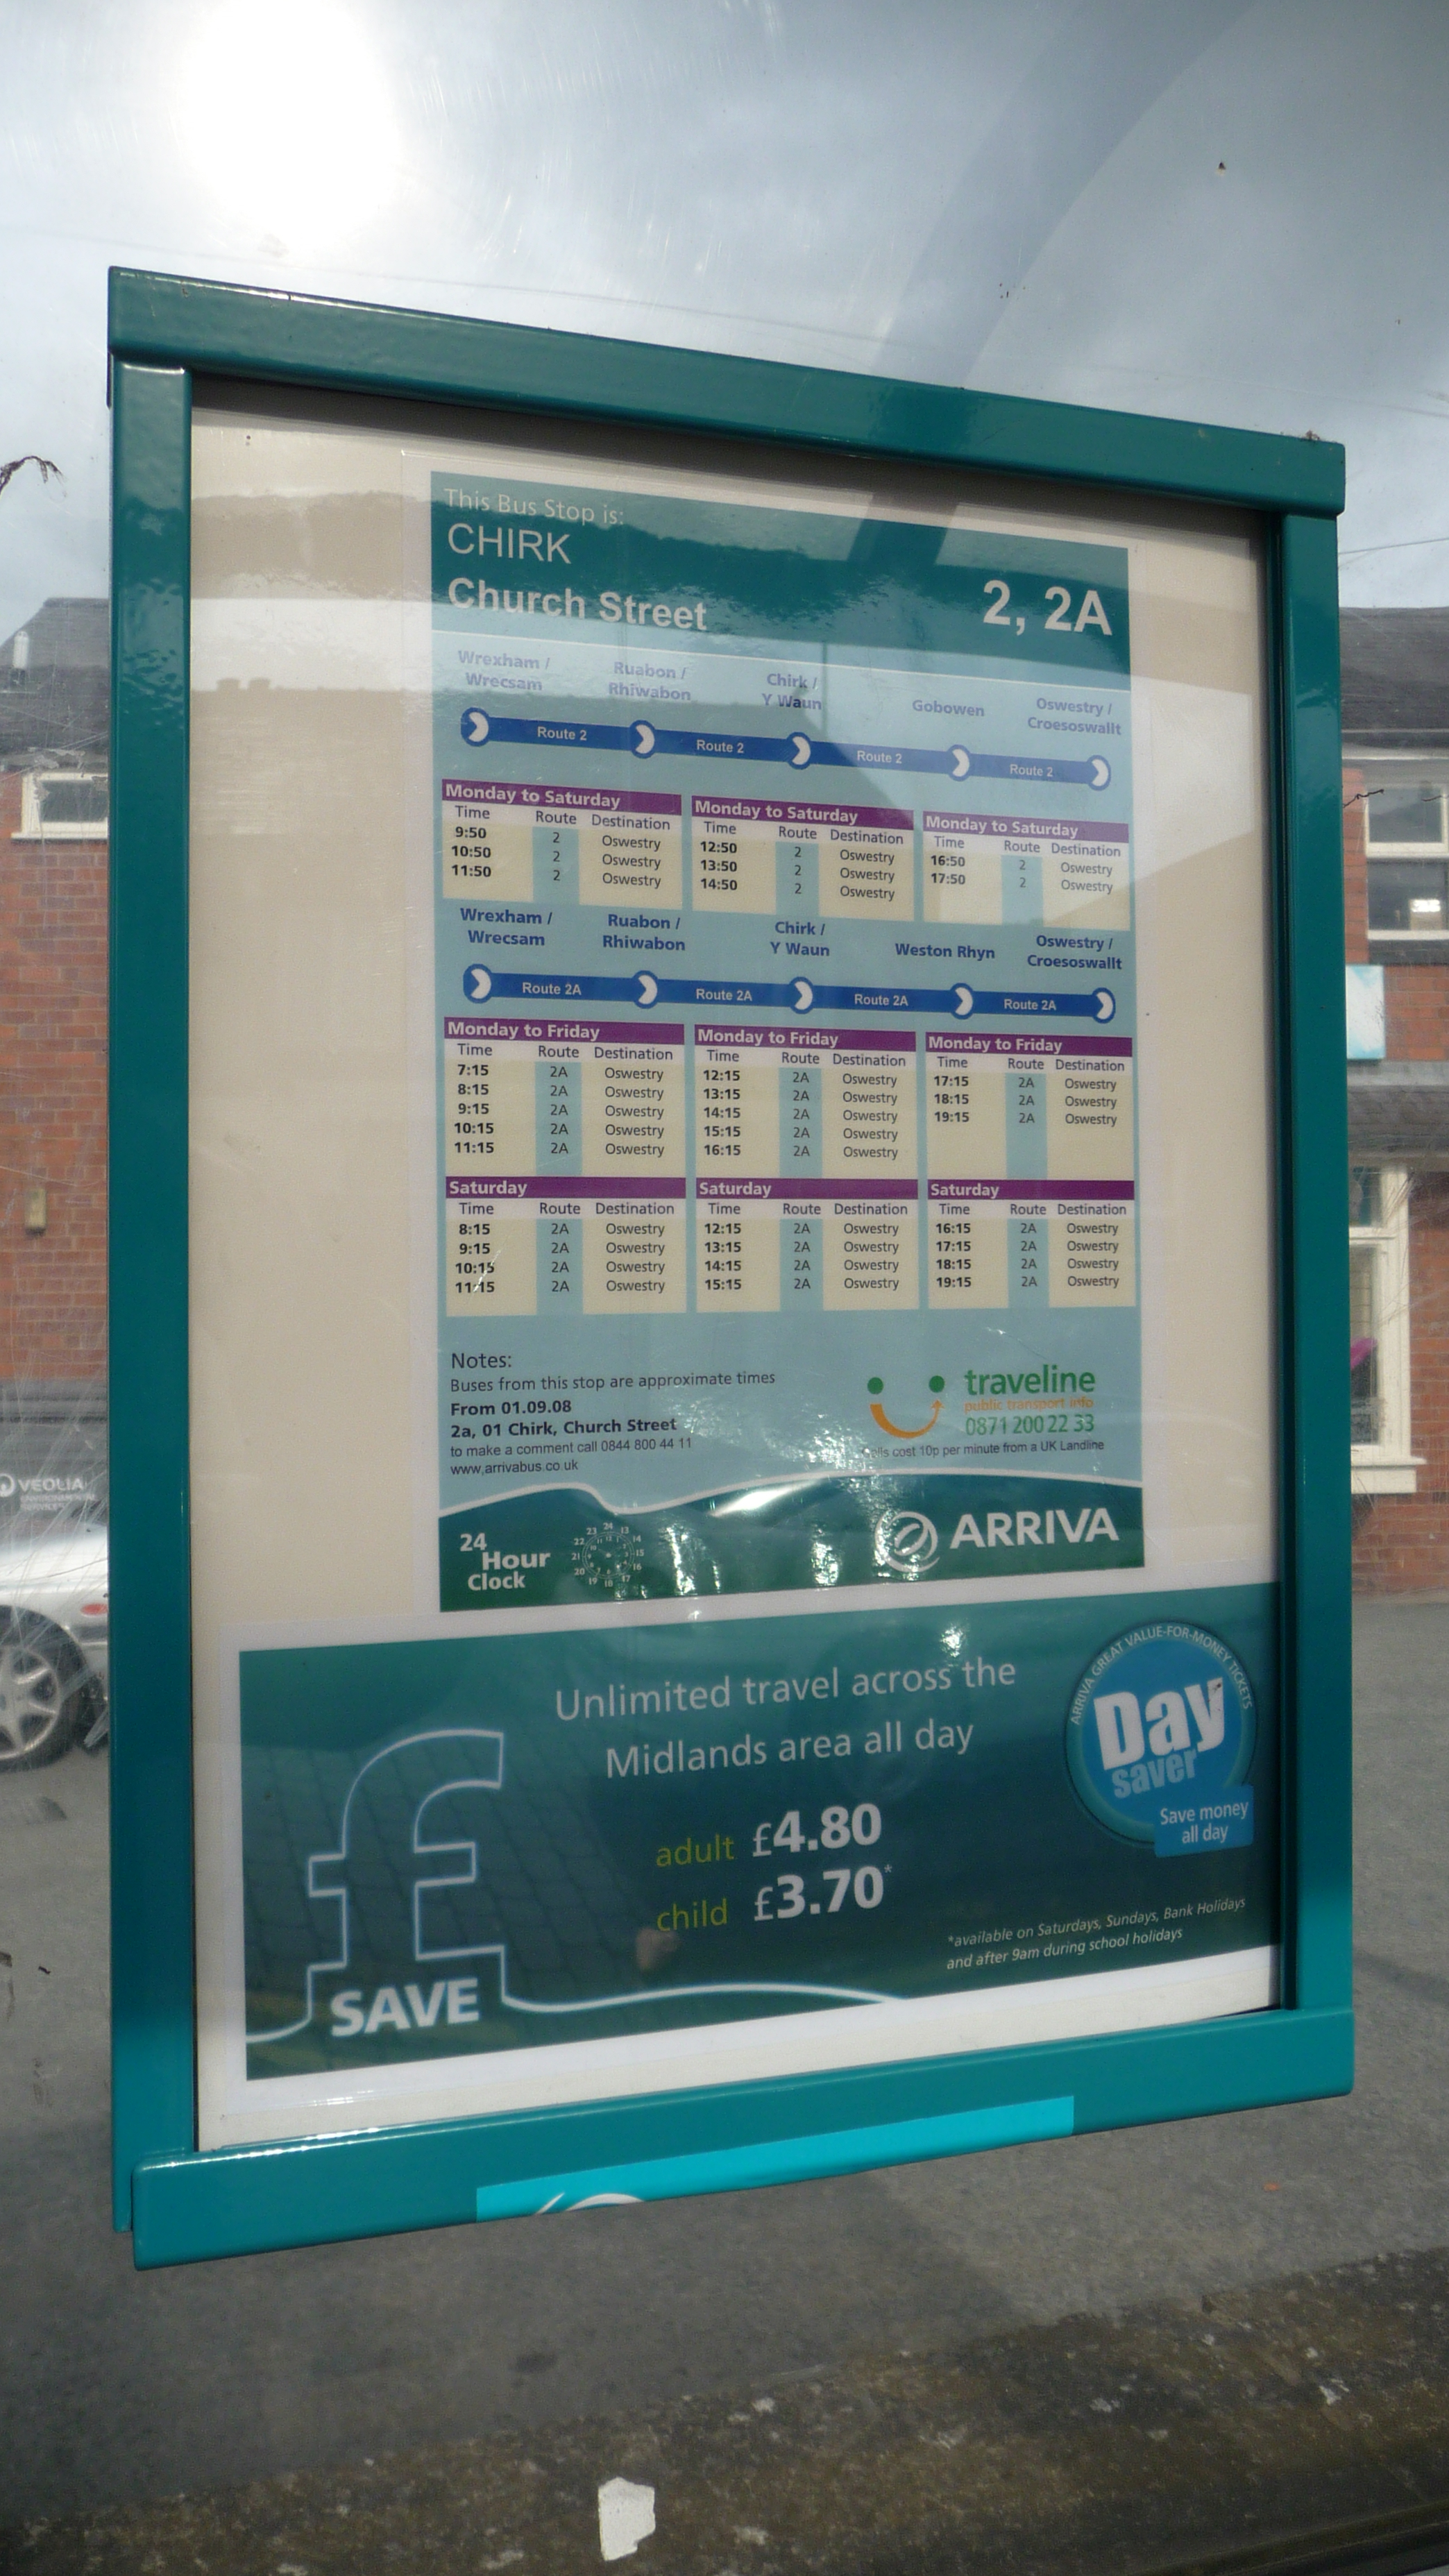 File Chirk Church Street Bus Stop Timetable Jpg